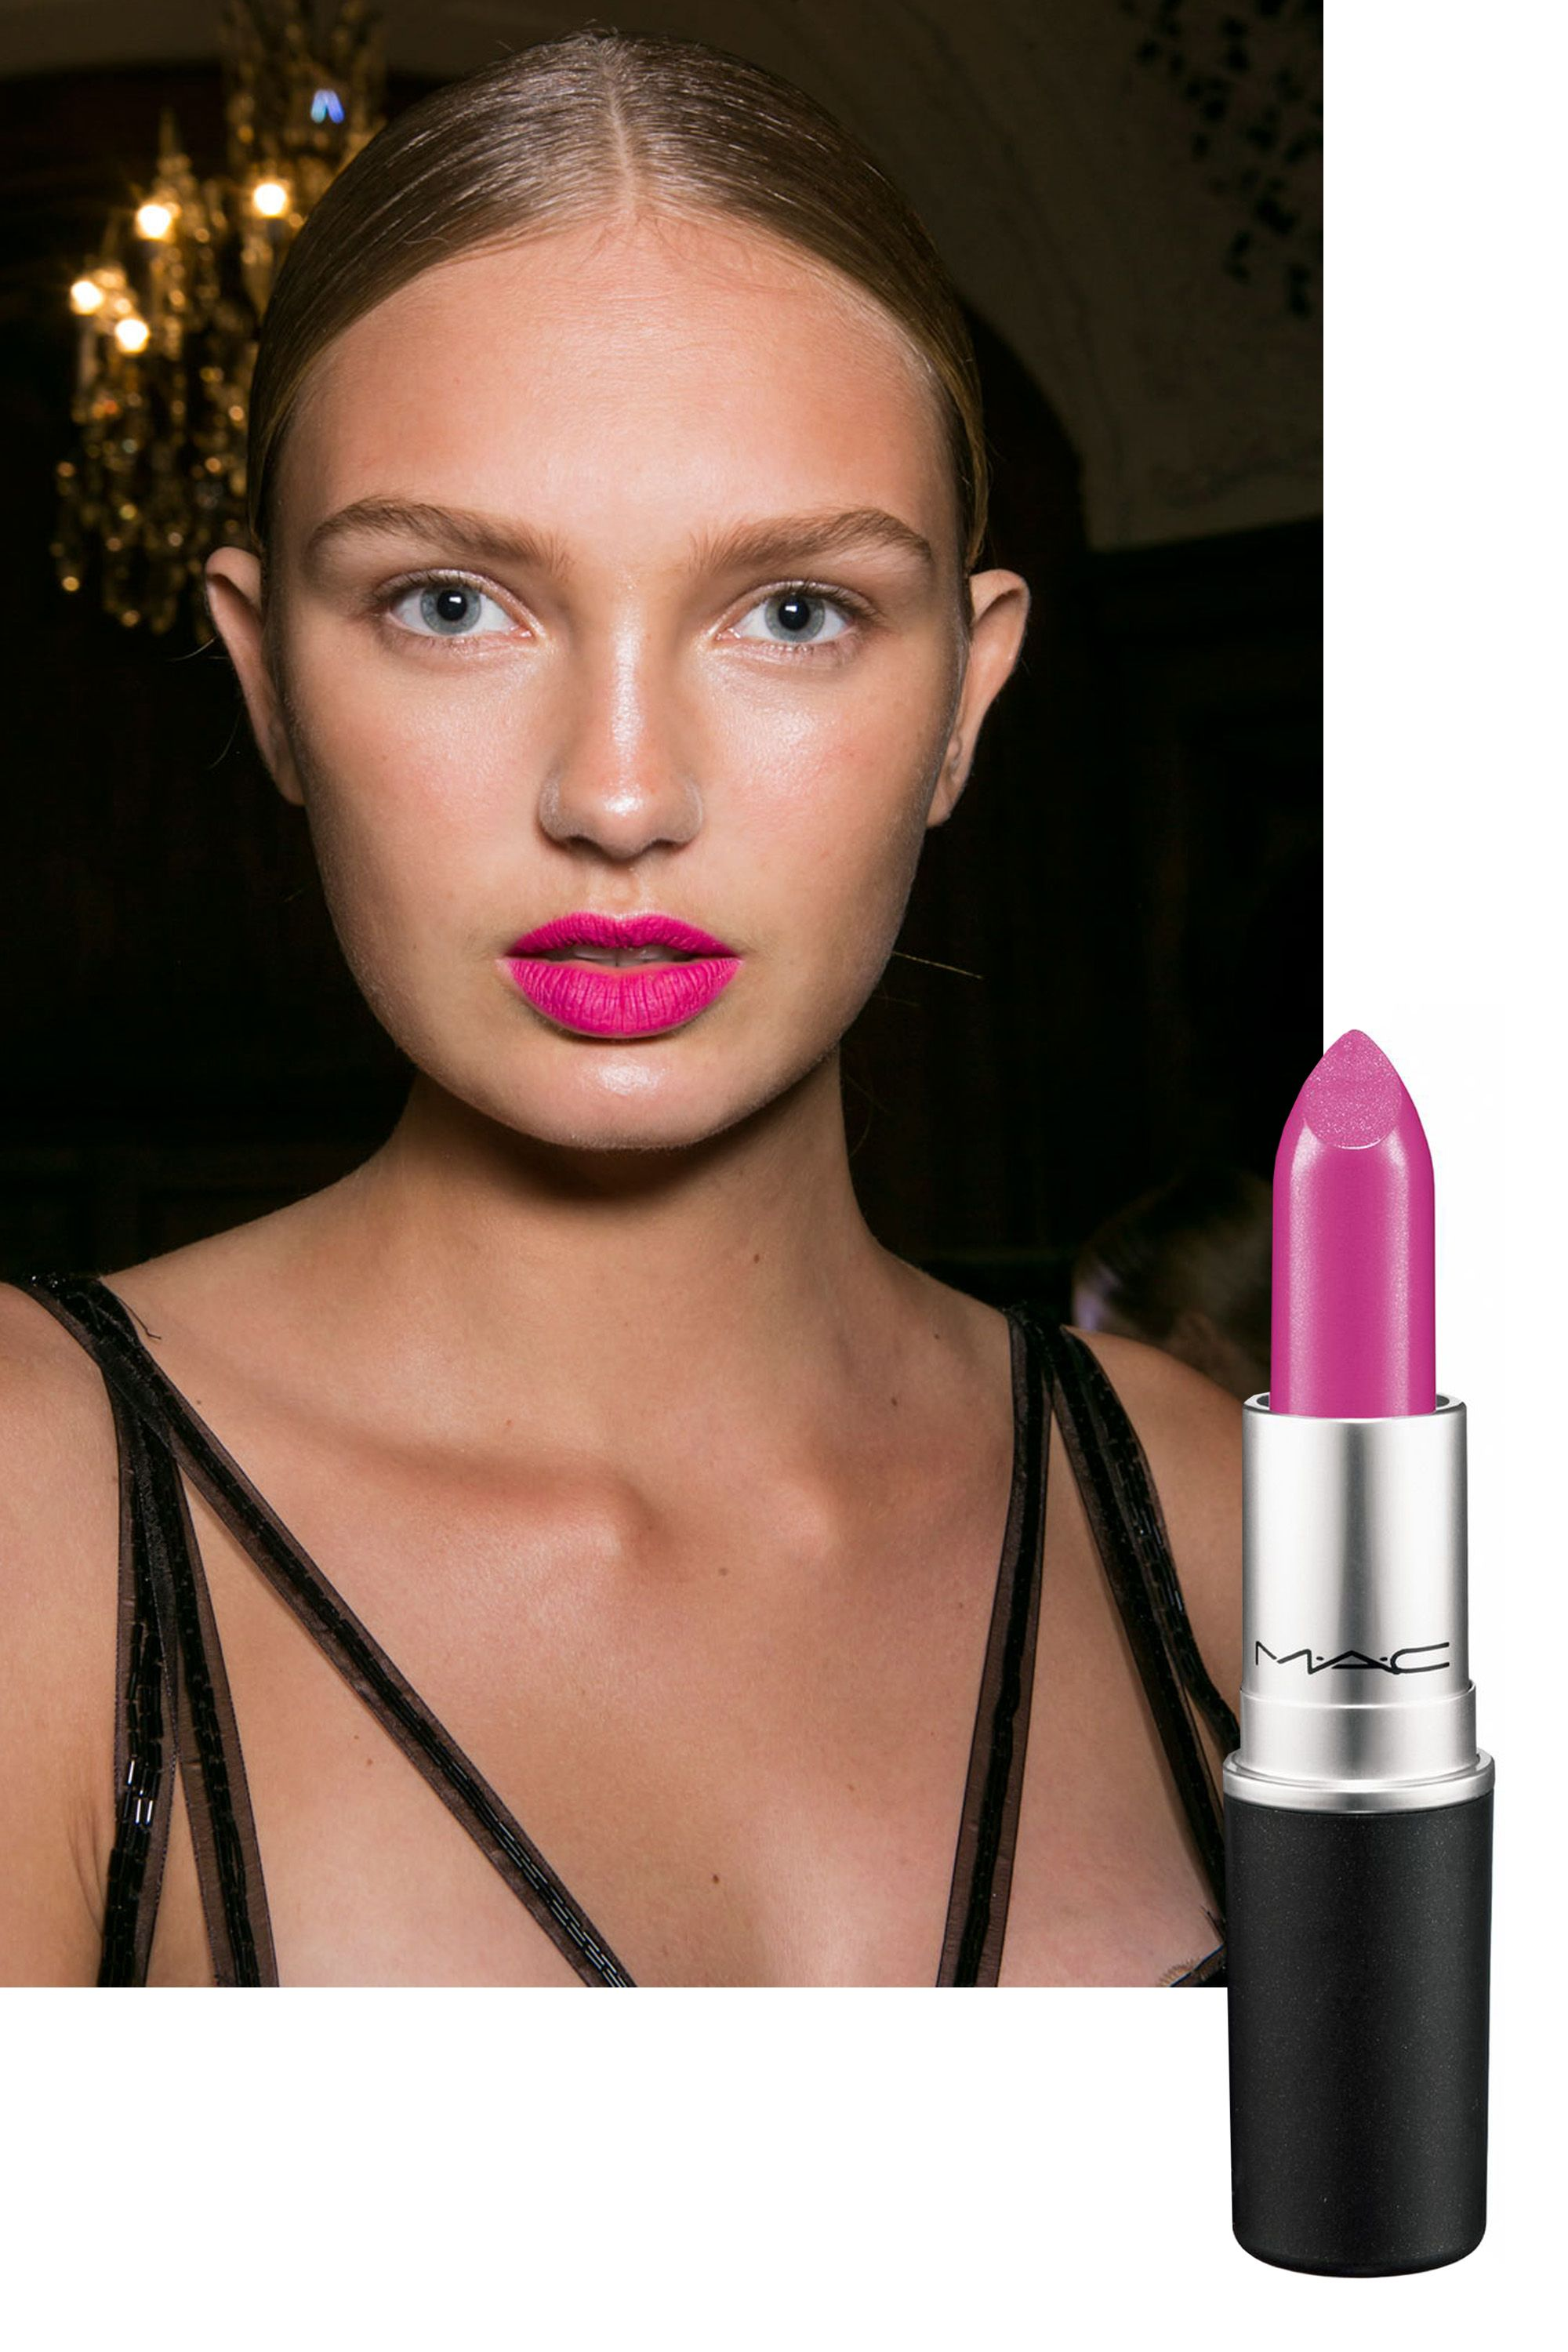 "<p>Inspired by the fluffy, pastel finale gowns in the collection, makeup pro Gucci Westman lacquered lips with four different products to achieve the ultimate pop of pink.  </p><p><em>For a similar look in one tube, try <a href=""http://www.maccosmetics.com/product/13854/310/Products/Makeup/Lips/Lipstick/Lipstick?gclid=CPGEweC7ksgCFUqRHwodvY8KNg#/shade/Girl_About_Town?cm_mmc=-_-MAC+-+US+Shopping+Campaign-_-Makeup-_-"" target=""_blank"">MAC Cosmetics Lipstick in Girl About Town</a> ($17).</em></p>"